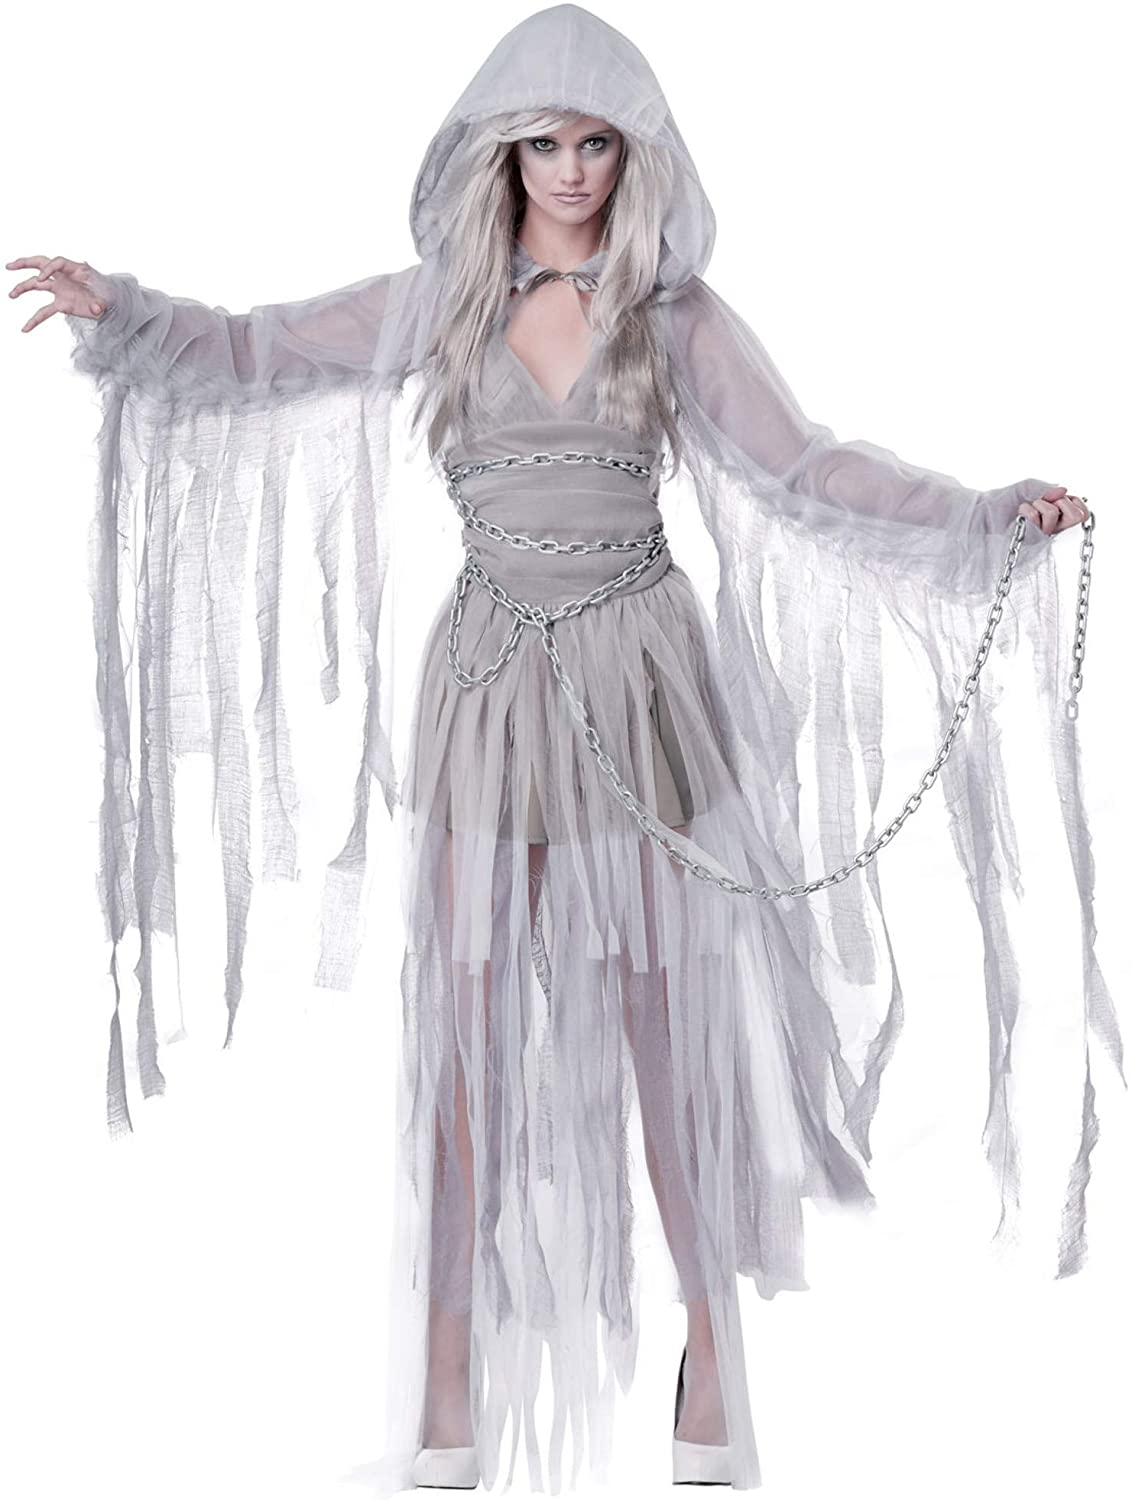 1900s, 1910s, WW1, Titanic Costumes California Costumes Womens Haunting Beauty Ghost Spirit Costume $35.94 AT vintagedancer.com